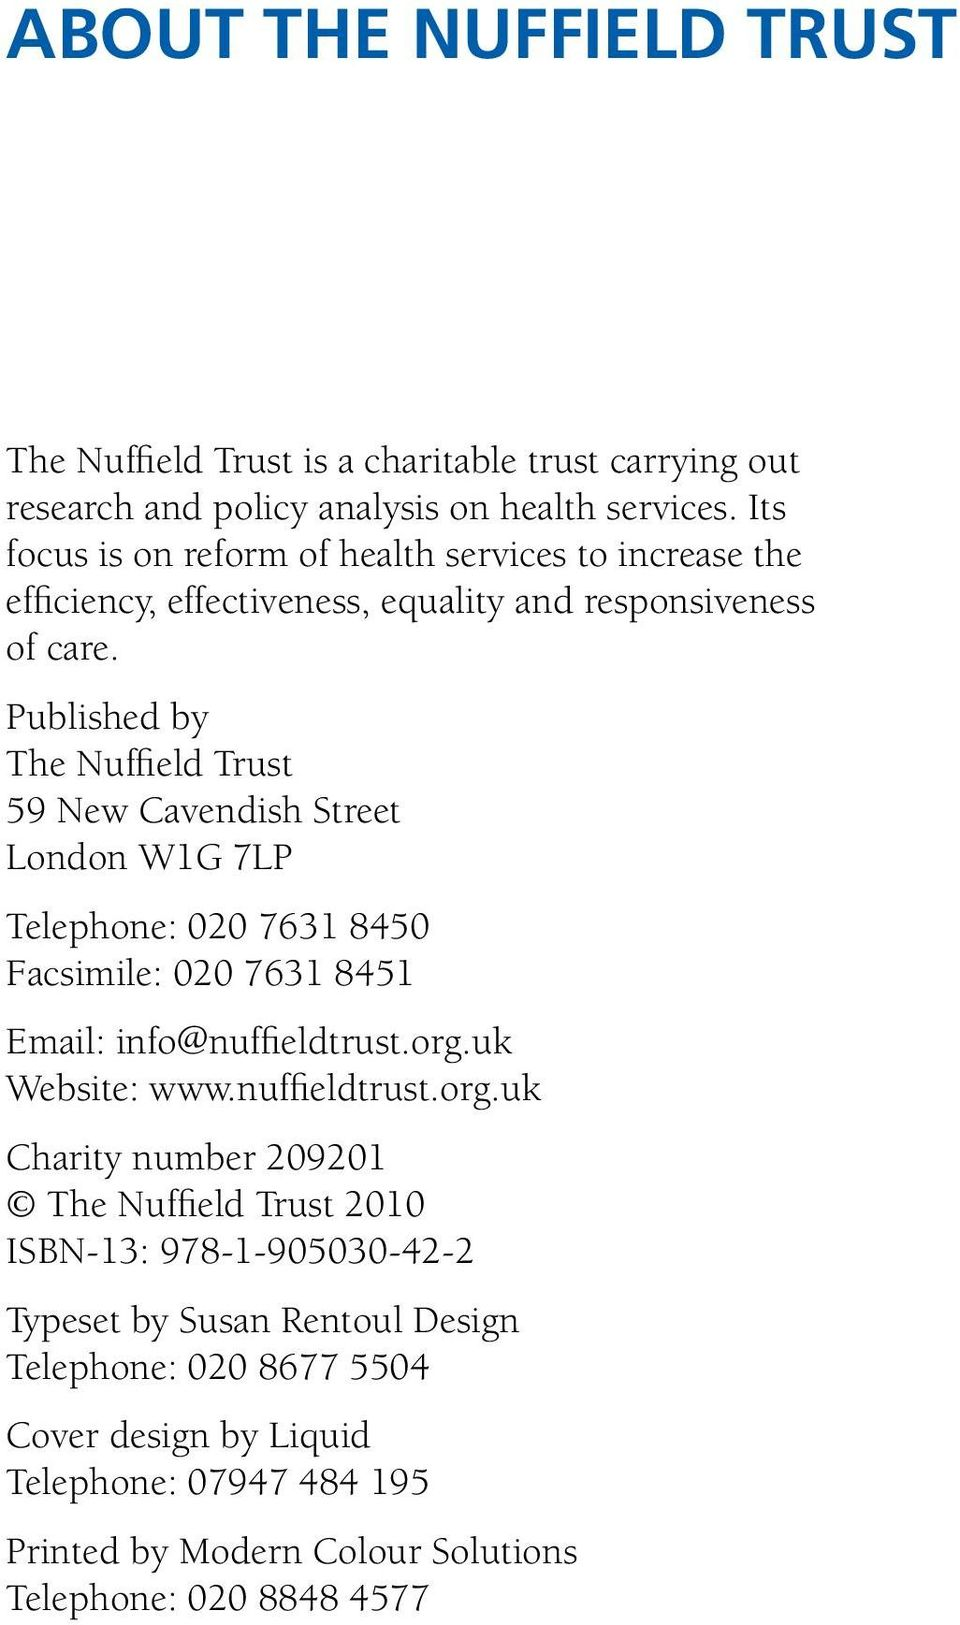 Published by The Nuffield Trust 59 New Cavendish Street London W1G 7LP Telephone: 020 7631 8450 Facsimile: 020 7631 8451 Email: info@nuffieldtrust.org.uk Website: www.